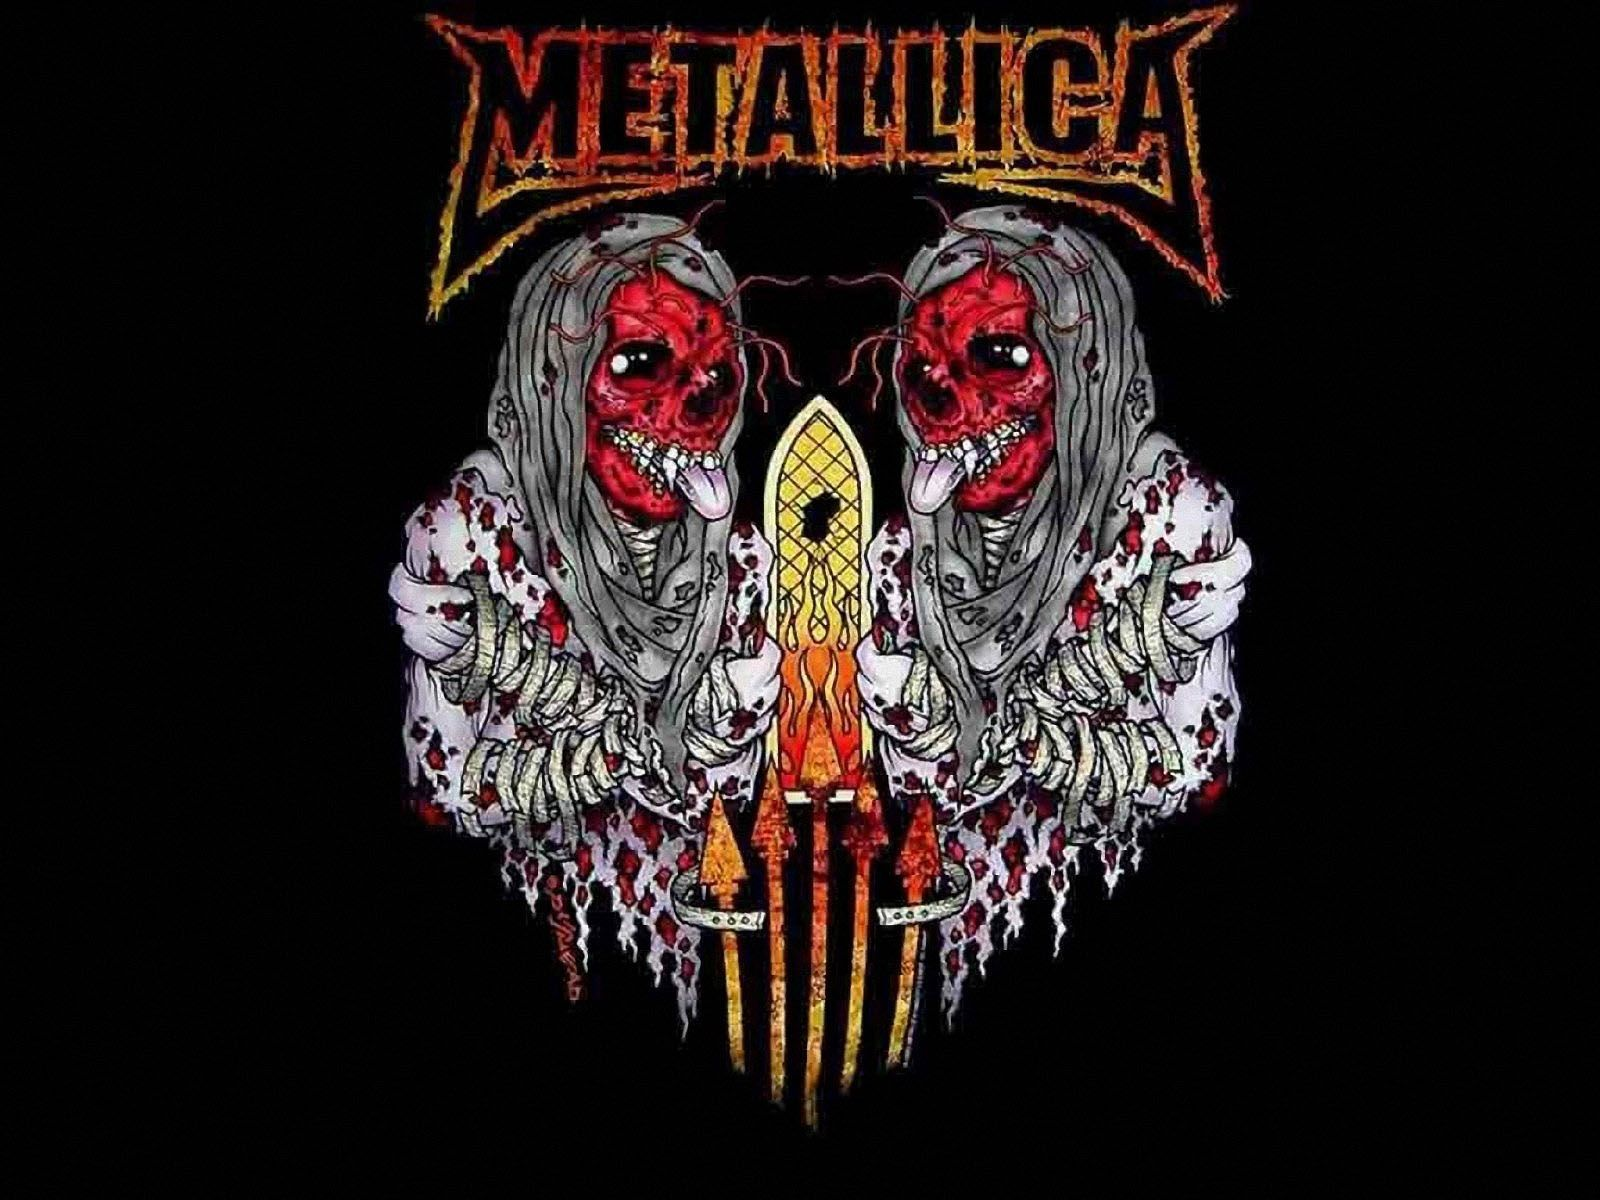 Heavy Metal Music metallica bands groups music